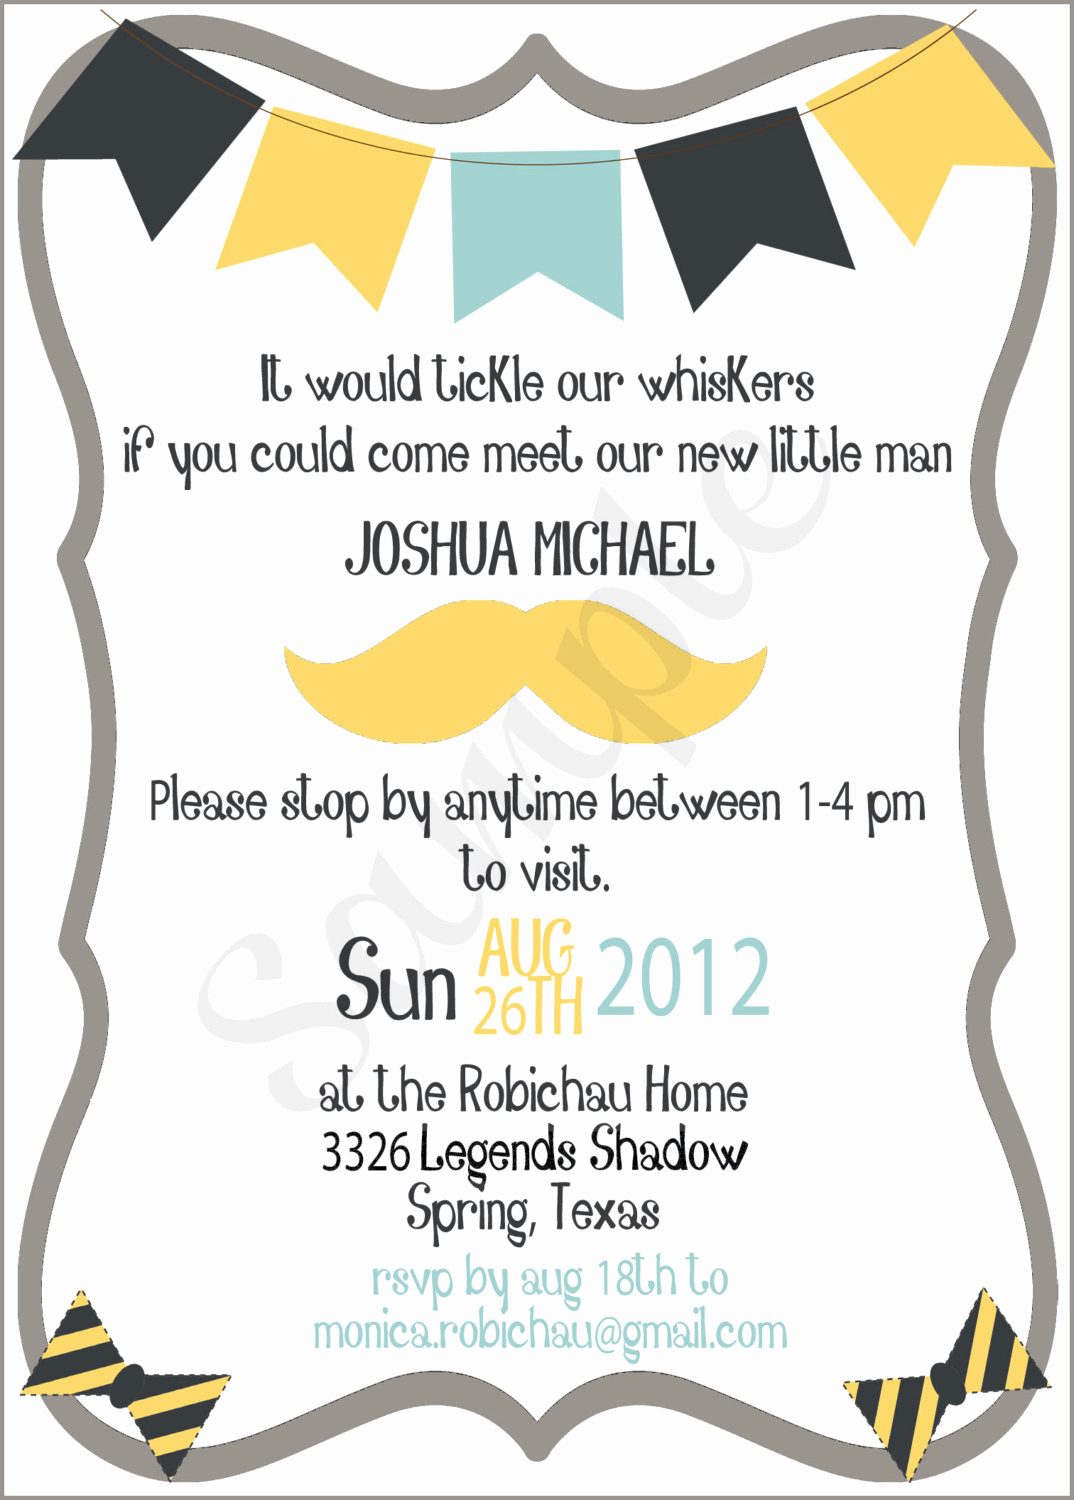 Meet and Greet Invitation Templates Beautiful Meet and Greet Business Invite